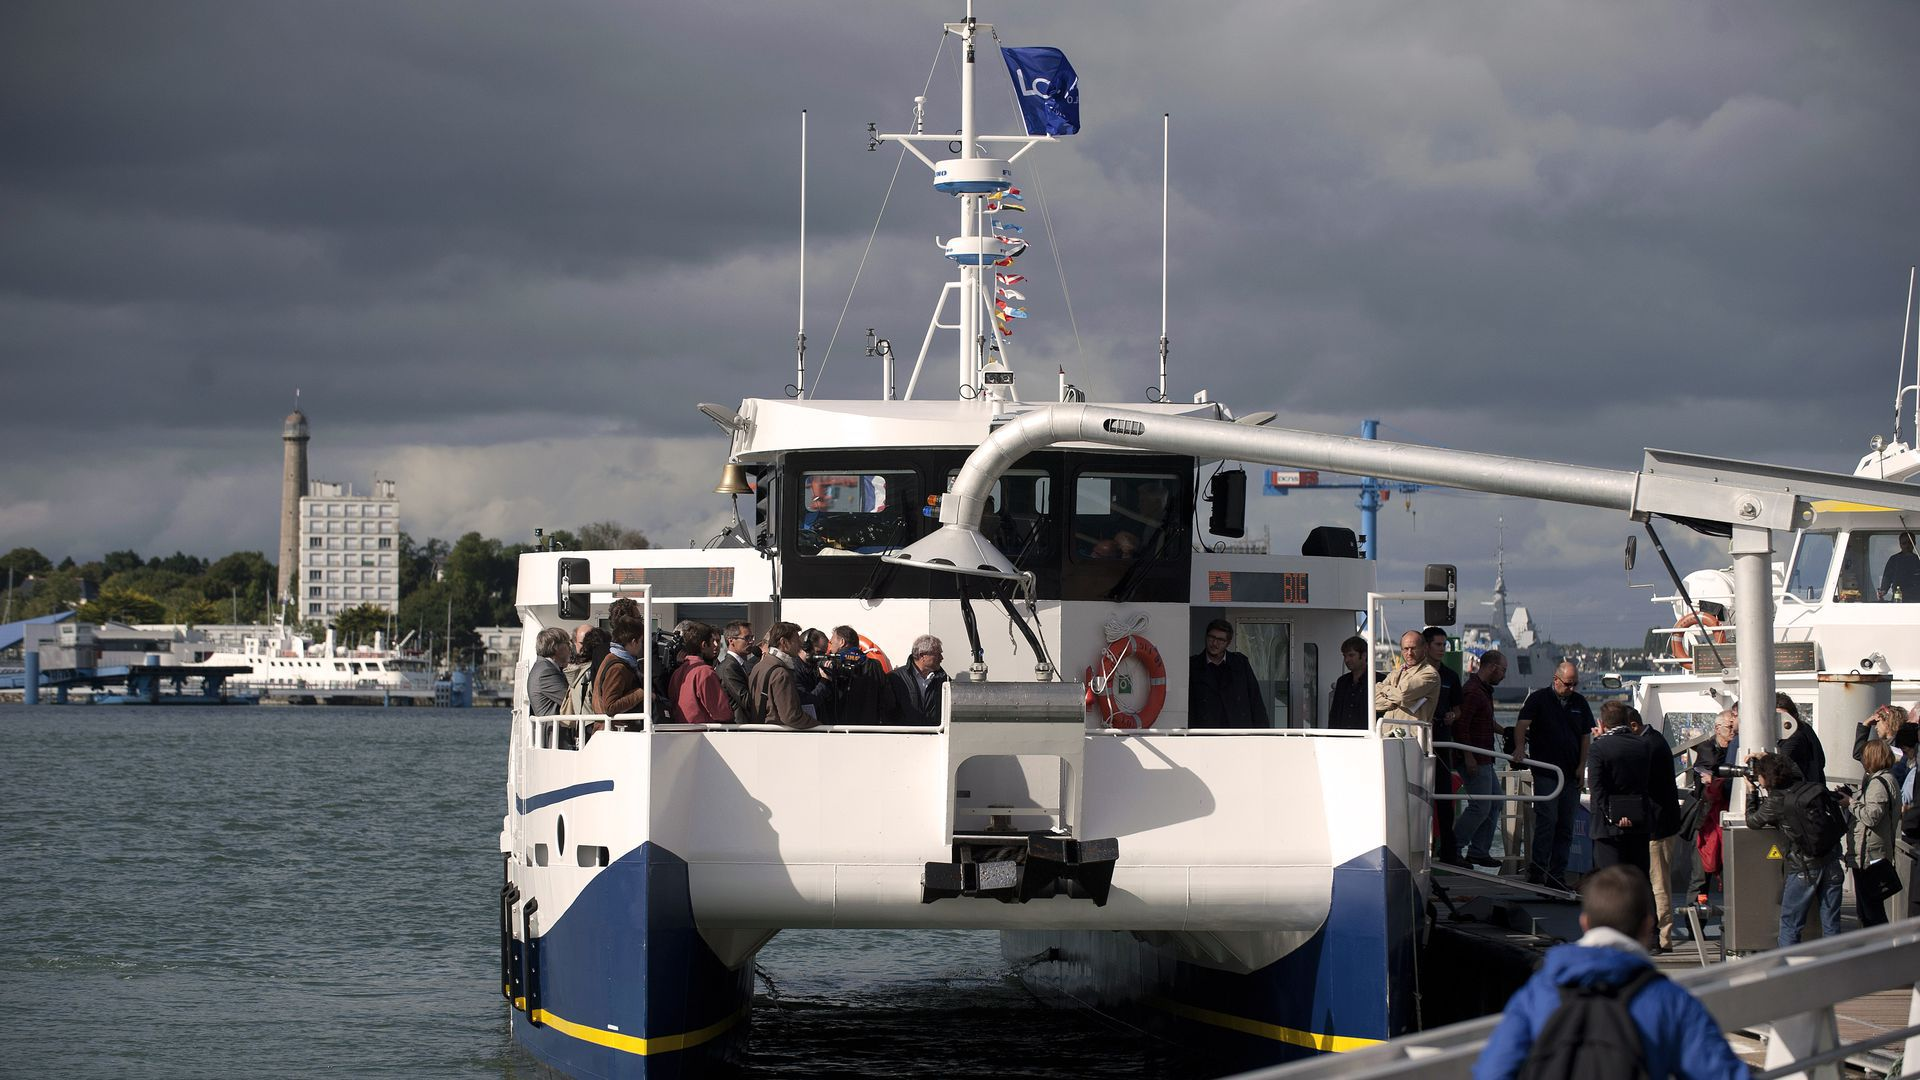 An electric ferry in France